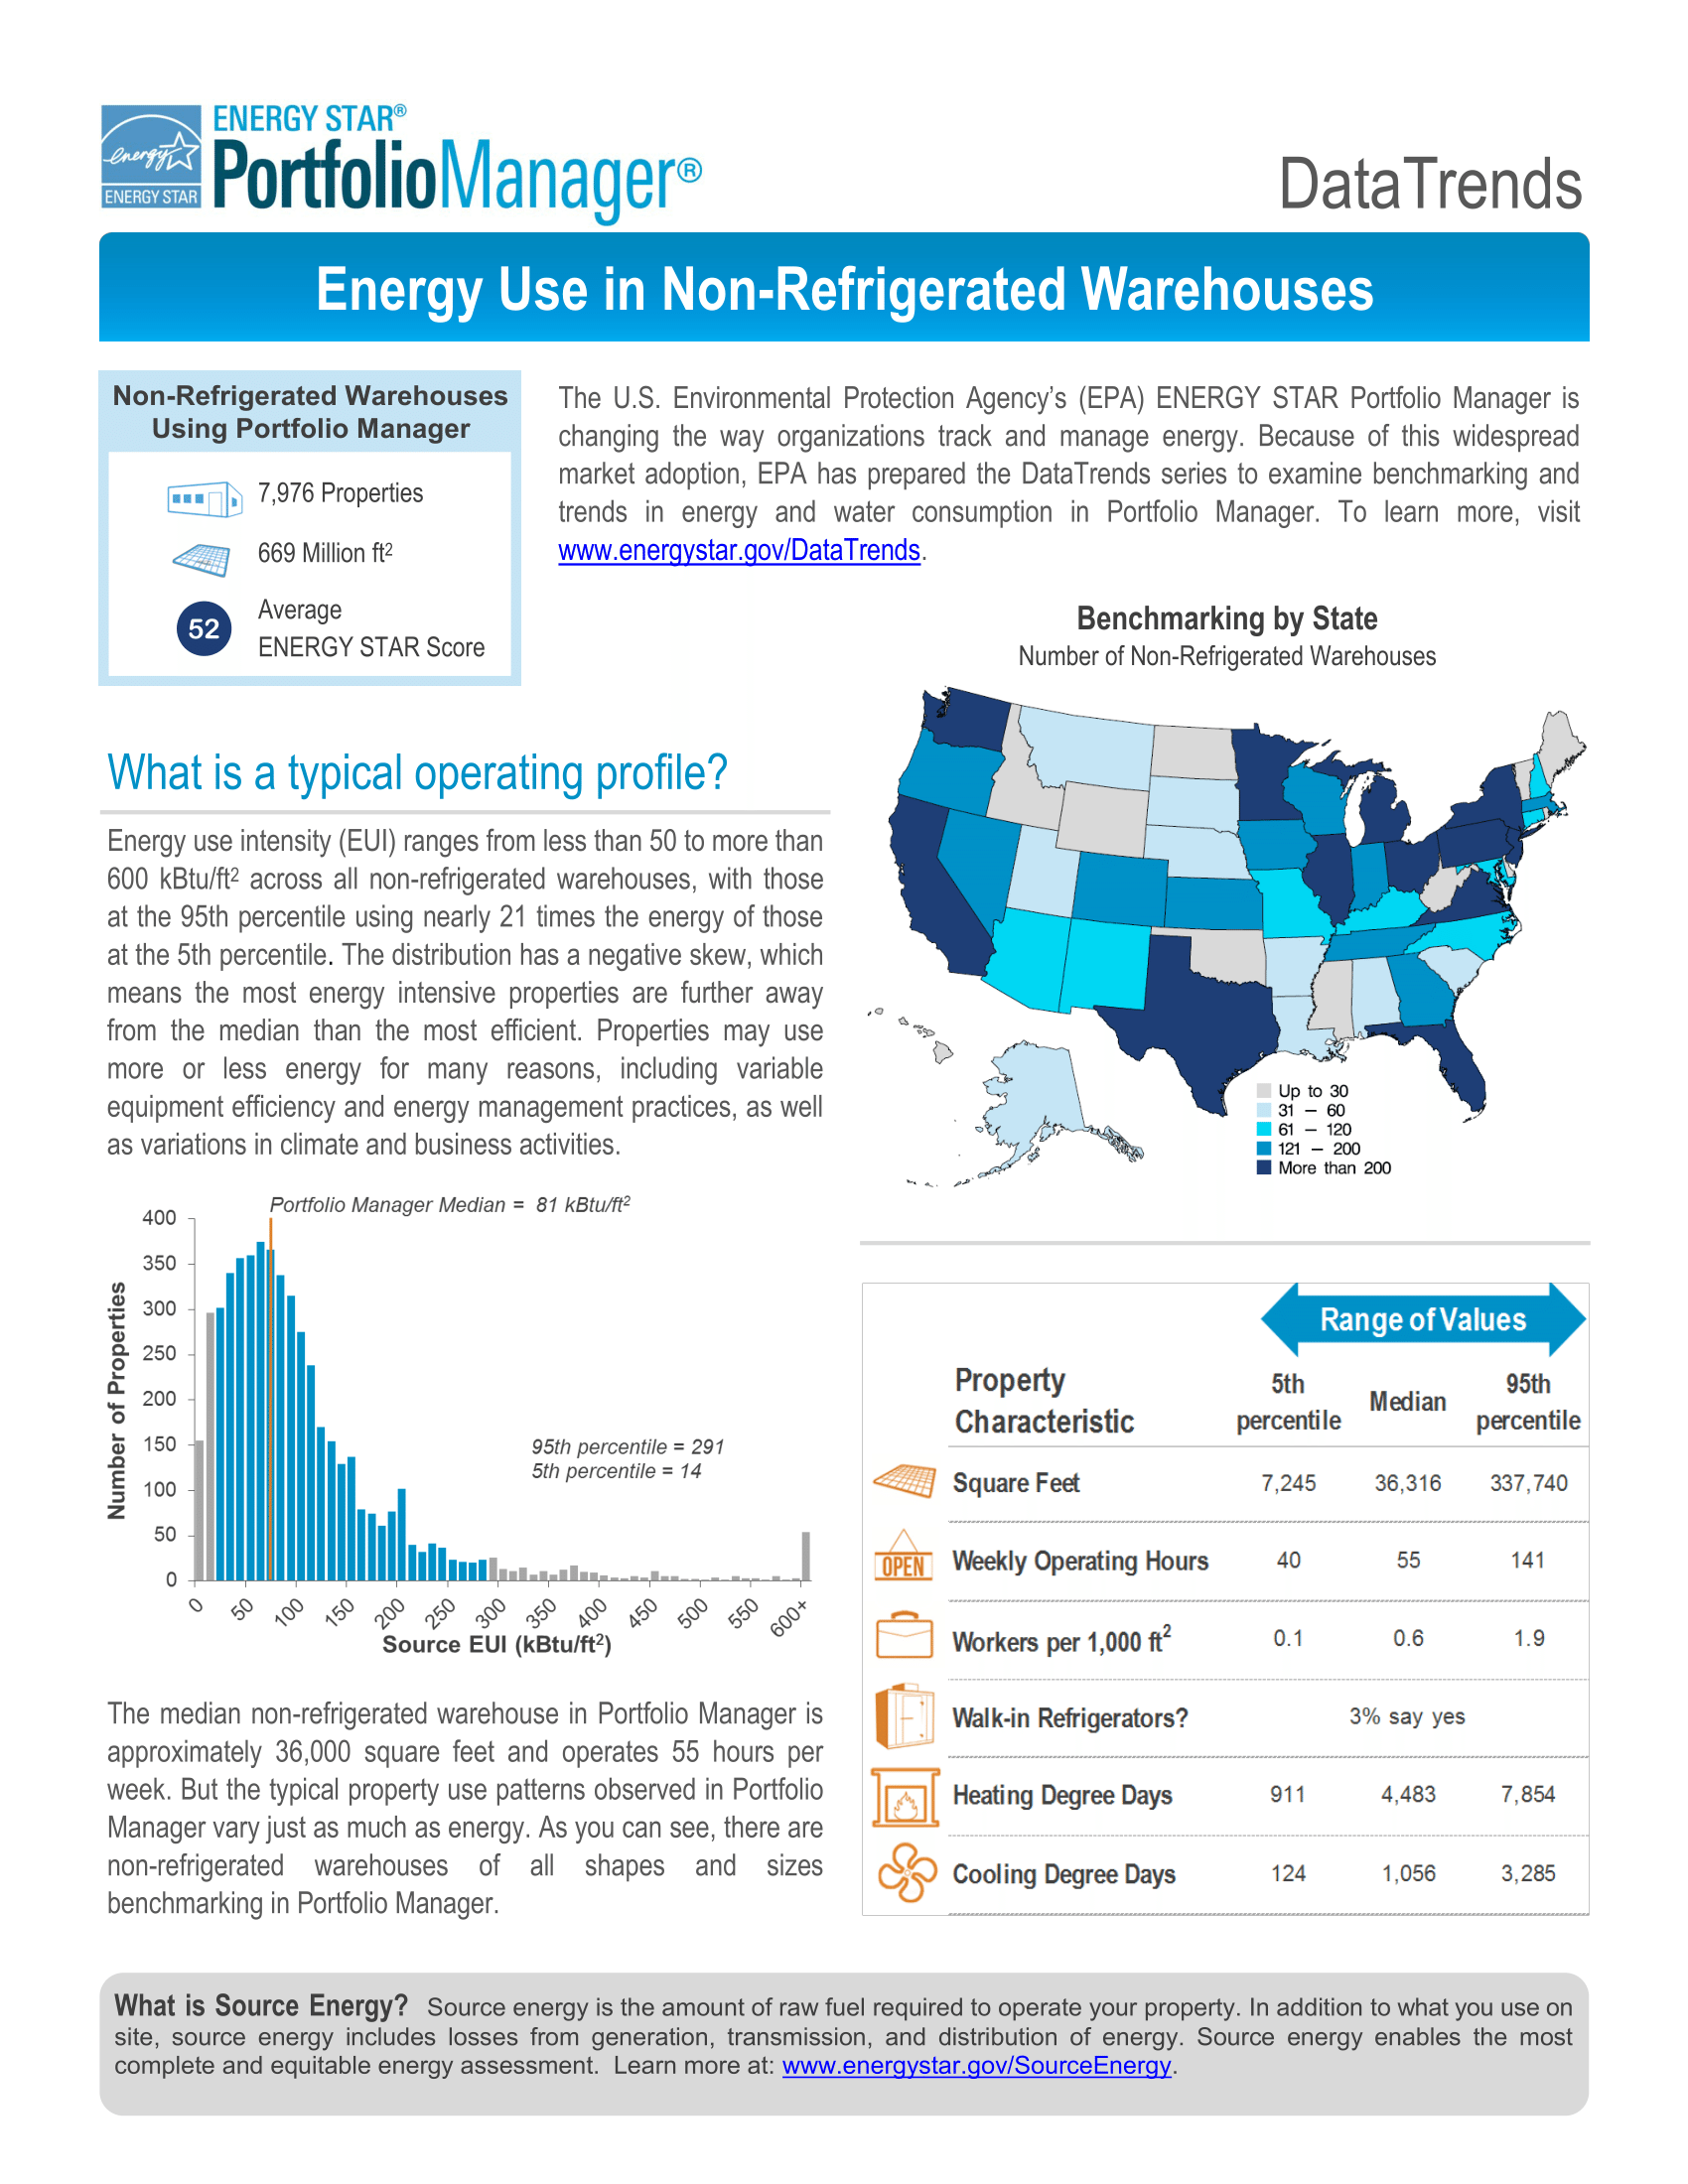 DataTrends: Energy Use in Non-Refrigerated Warehouses